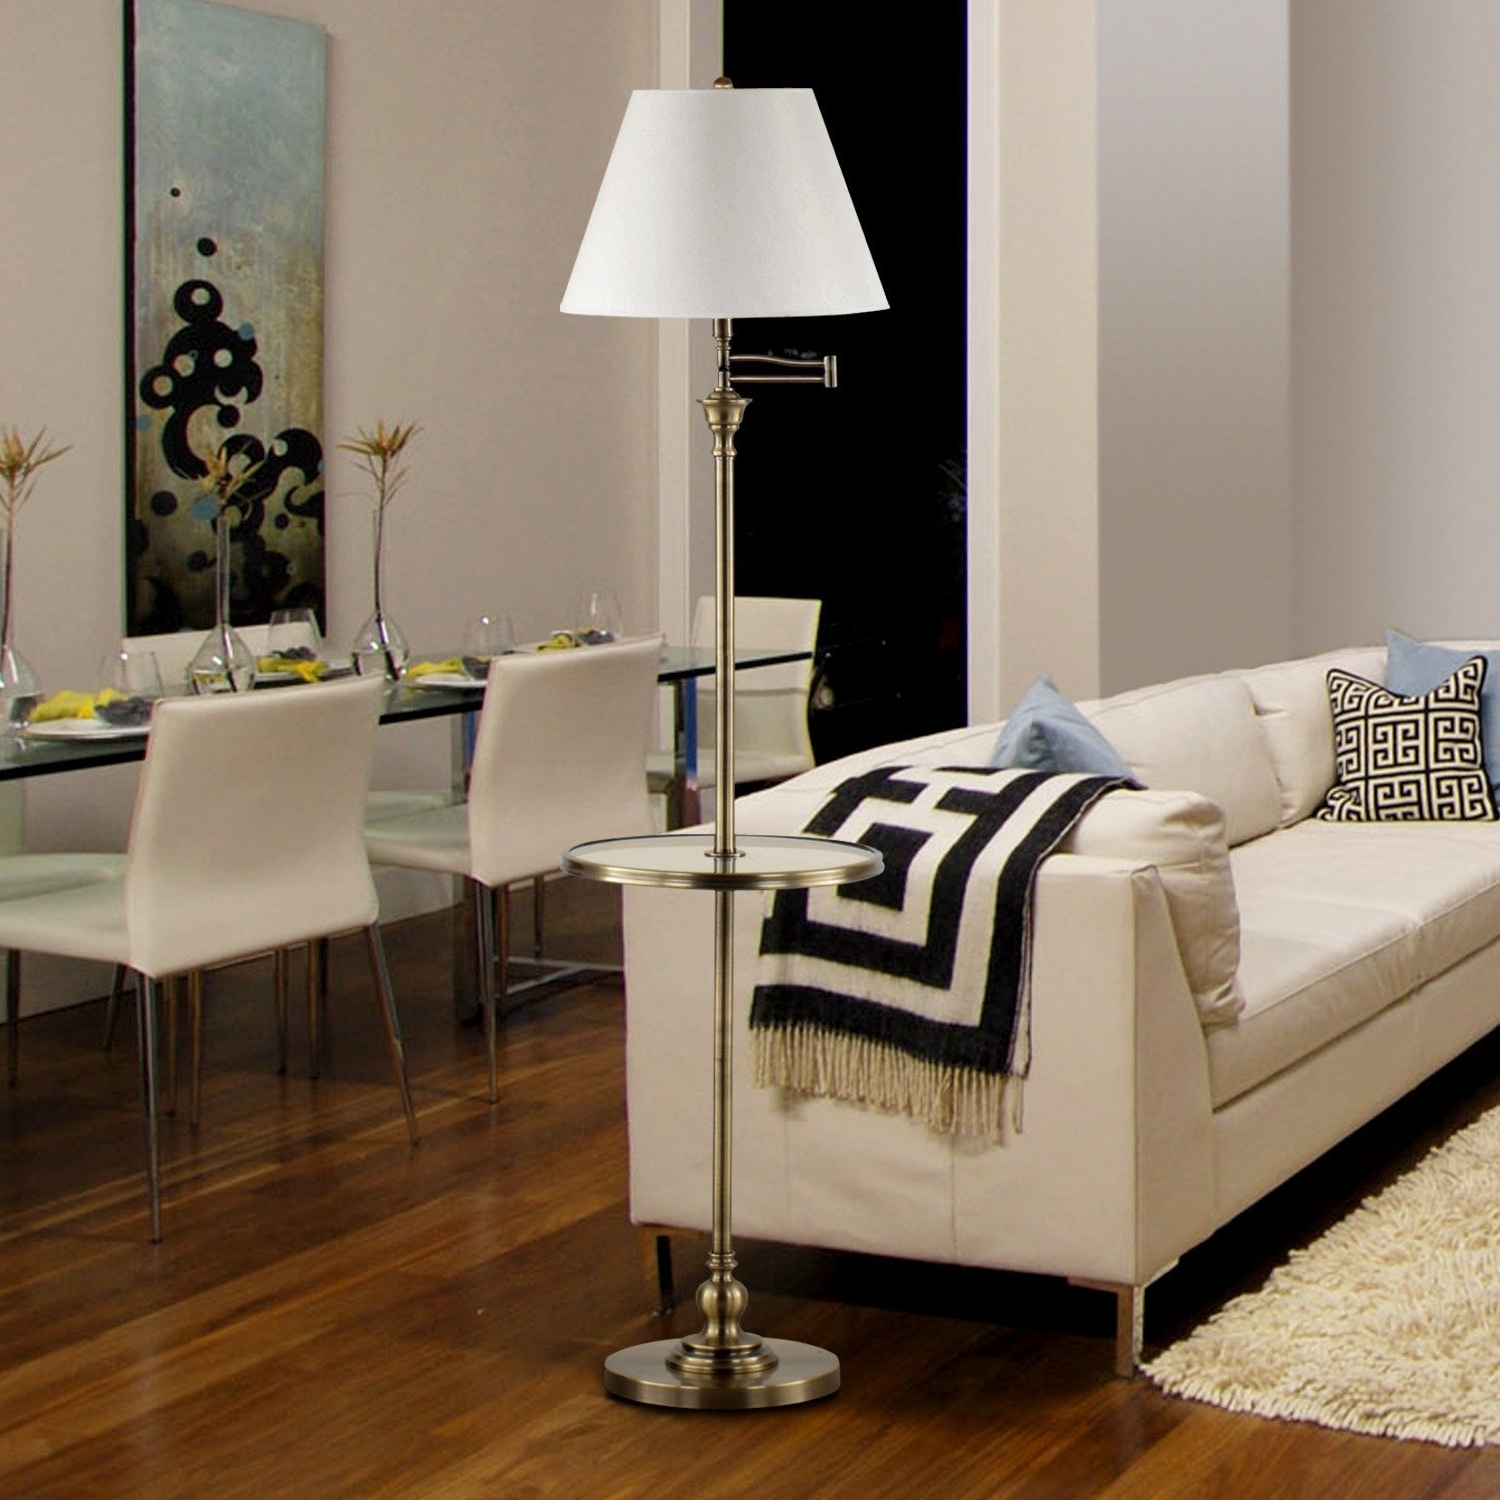 Widely Used Top 71 Perfect Short Floor Lamps Chrome Lamp Brass Ikea Standard With Regard To Living Room Table Lamps At Ikea (View 20 of 20)